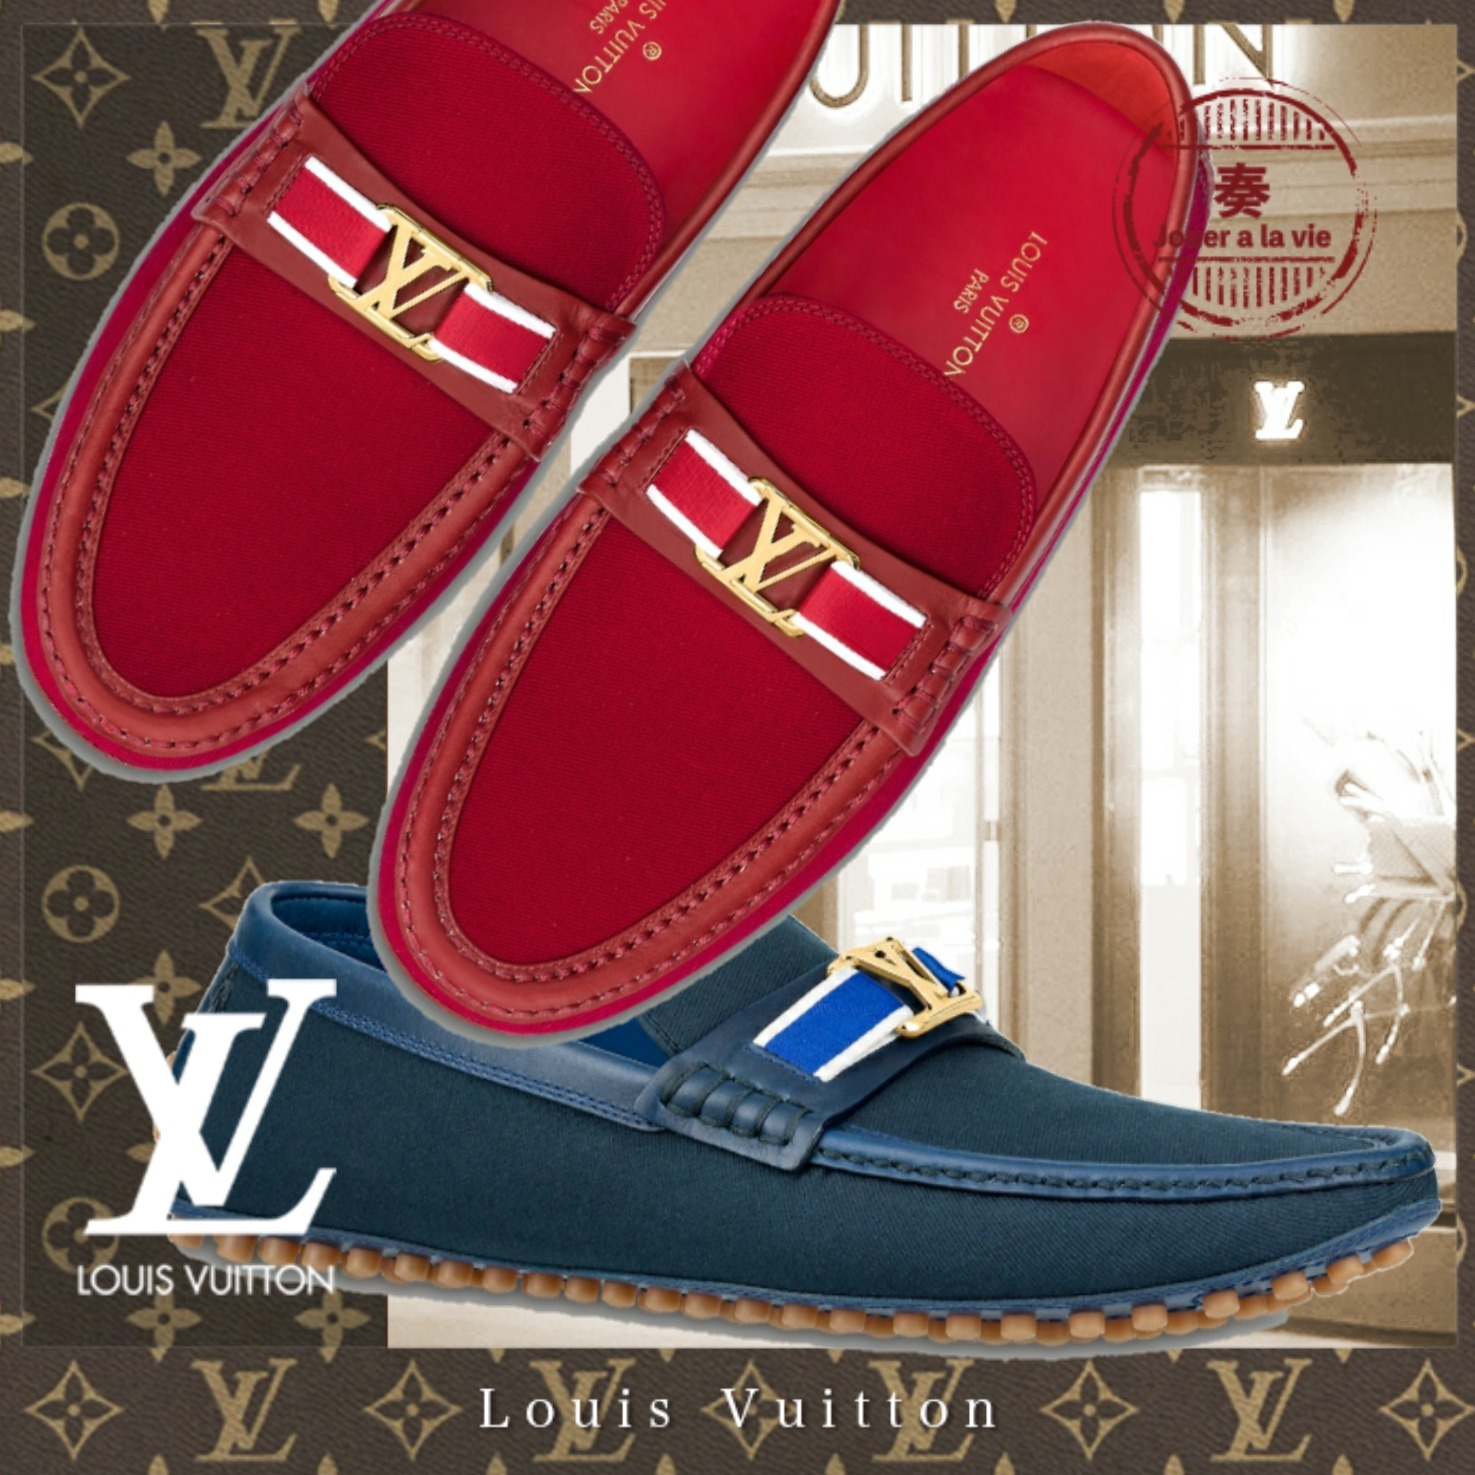 21SS直営買付 Louis Vuitton ホッケンハイム・ライン ローファー (Louis Vuitton/ドレスシューズ・革靴・ビジネスシューズ) 1A8ISS / 1A8ISU : 1A8IUO / 1A8IUQ  1A8ISW / 1A8ISY : 1A8IUS / 1A8IUU  1A8IT0 / 1A8IT2 : 1A8IUW / 1A8IUY